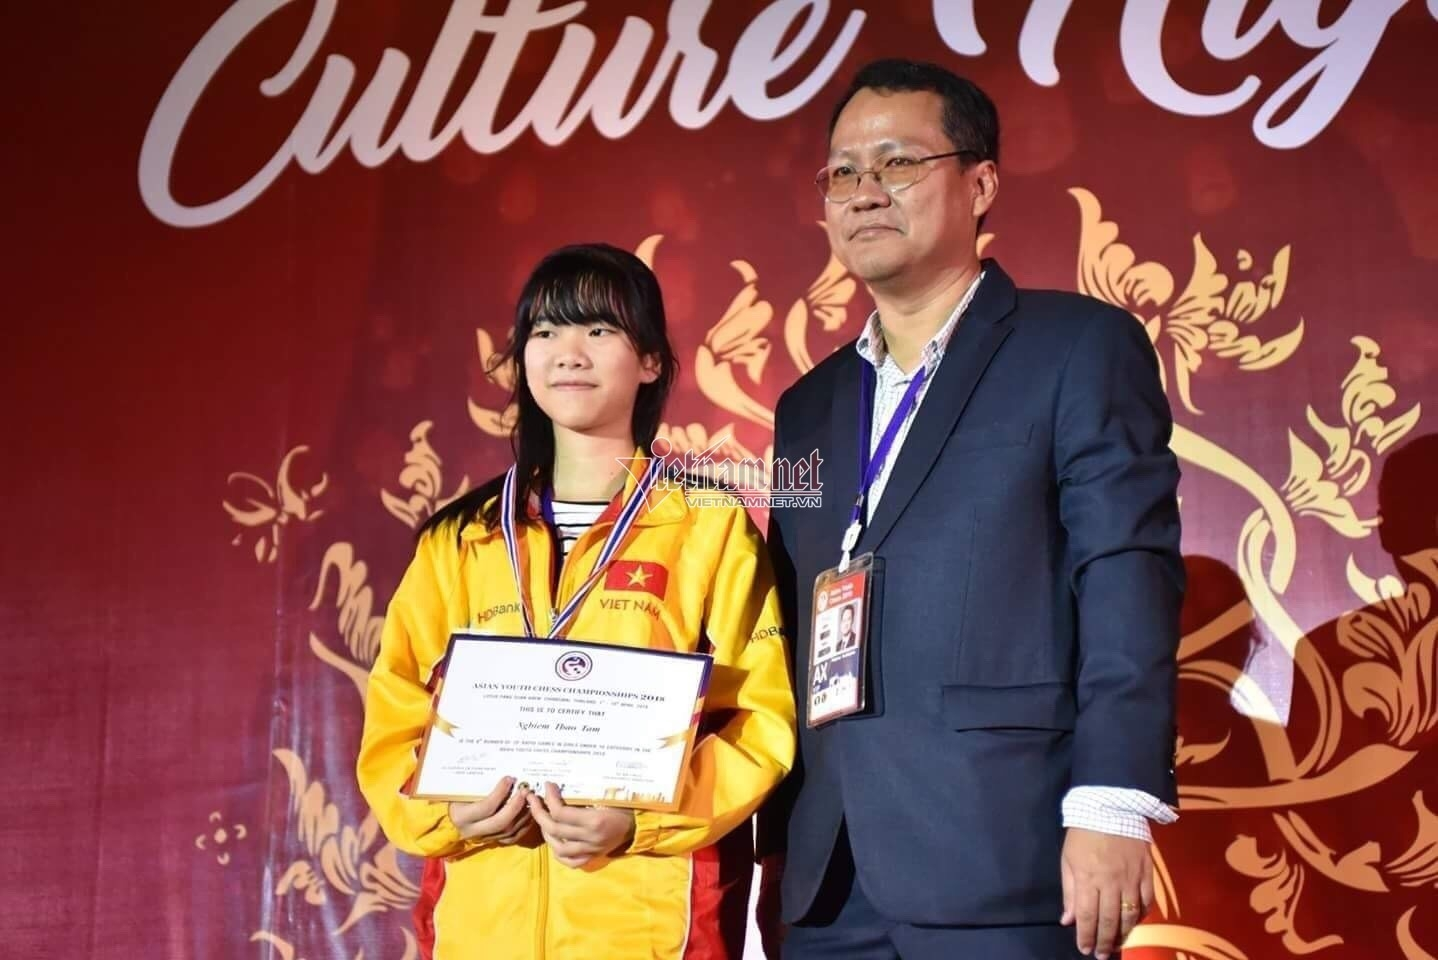 Young Asian Chess Cup champion wins VND 3.3 billion scholarship